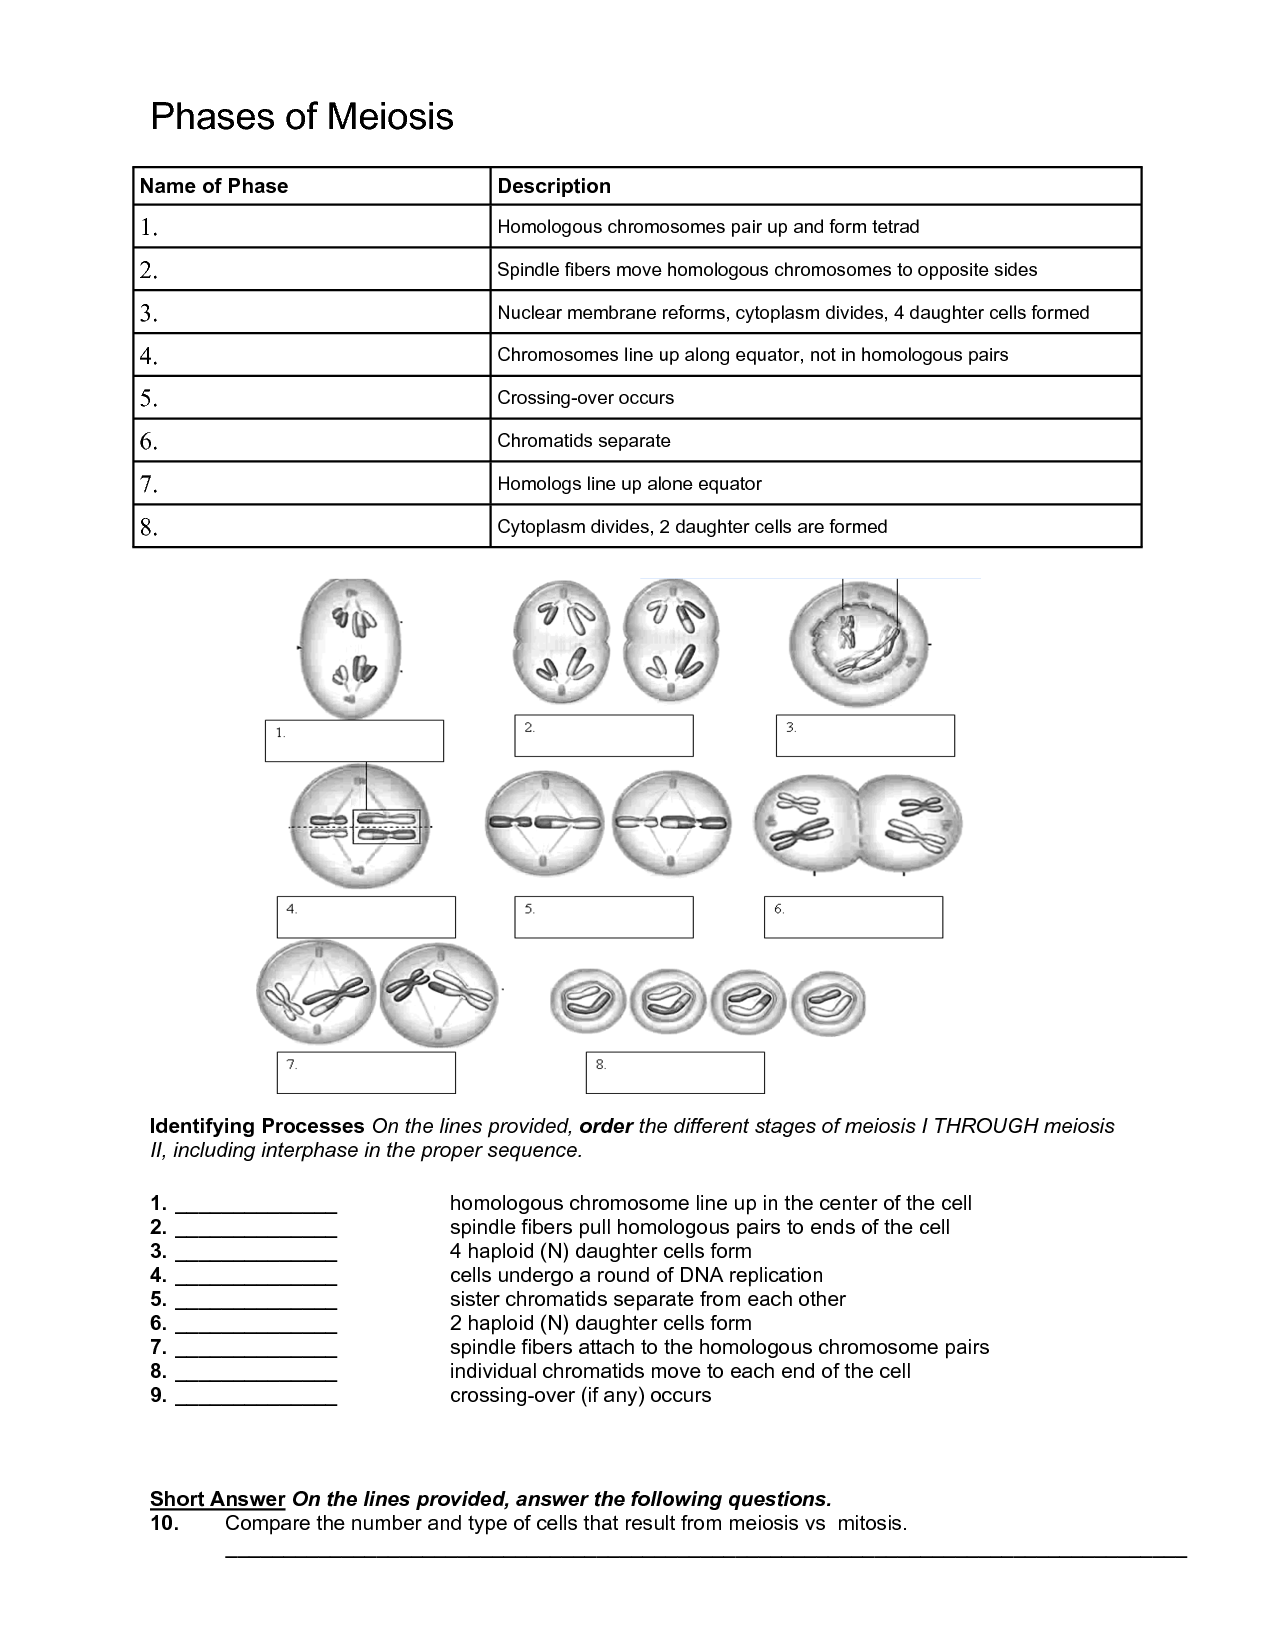 35 Comparing Mitosis And Meiosis Worksheet Answer Key